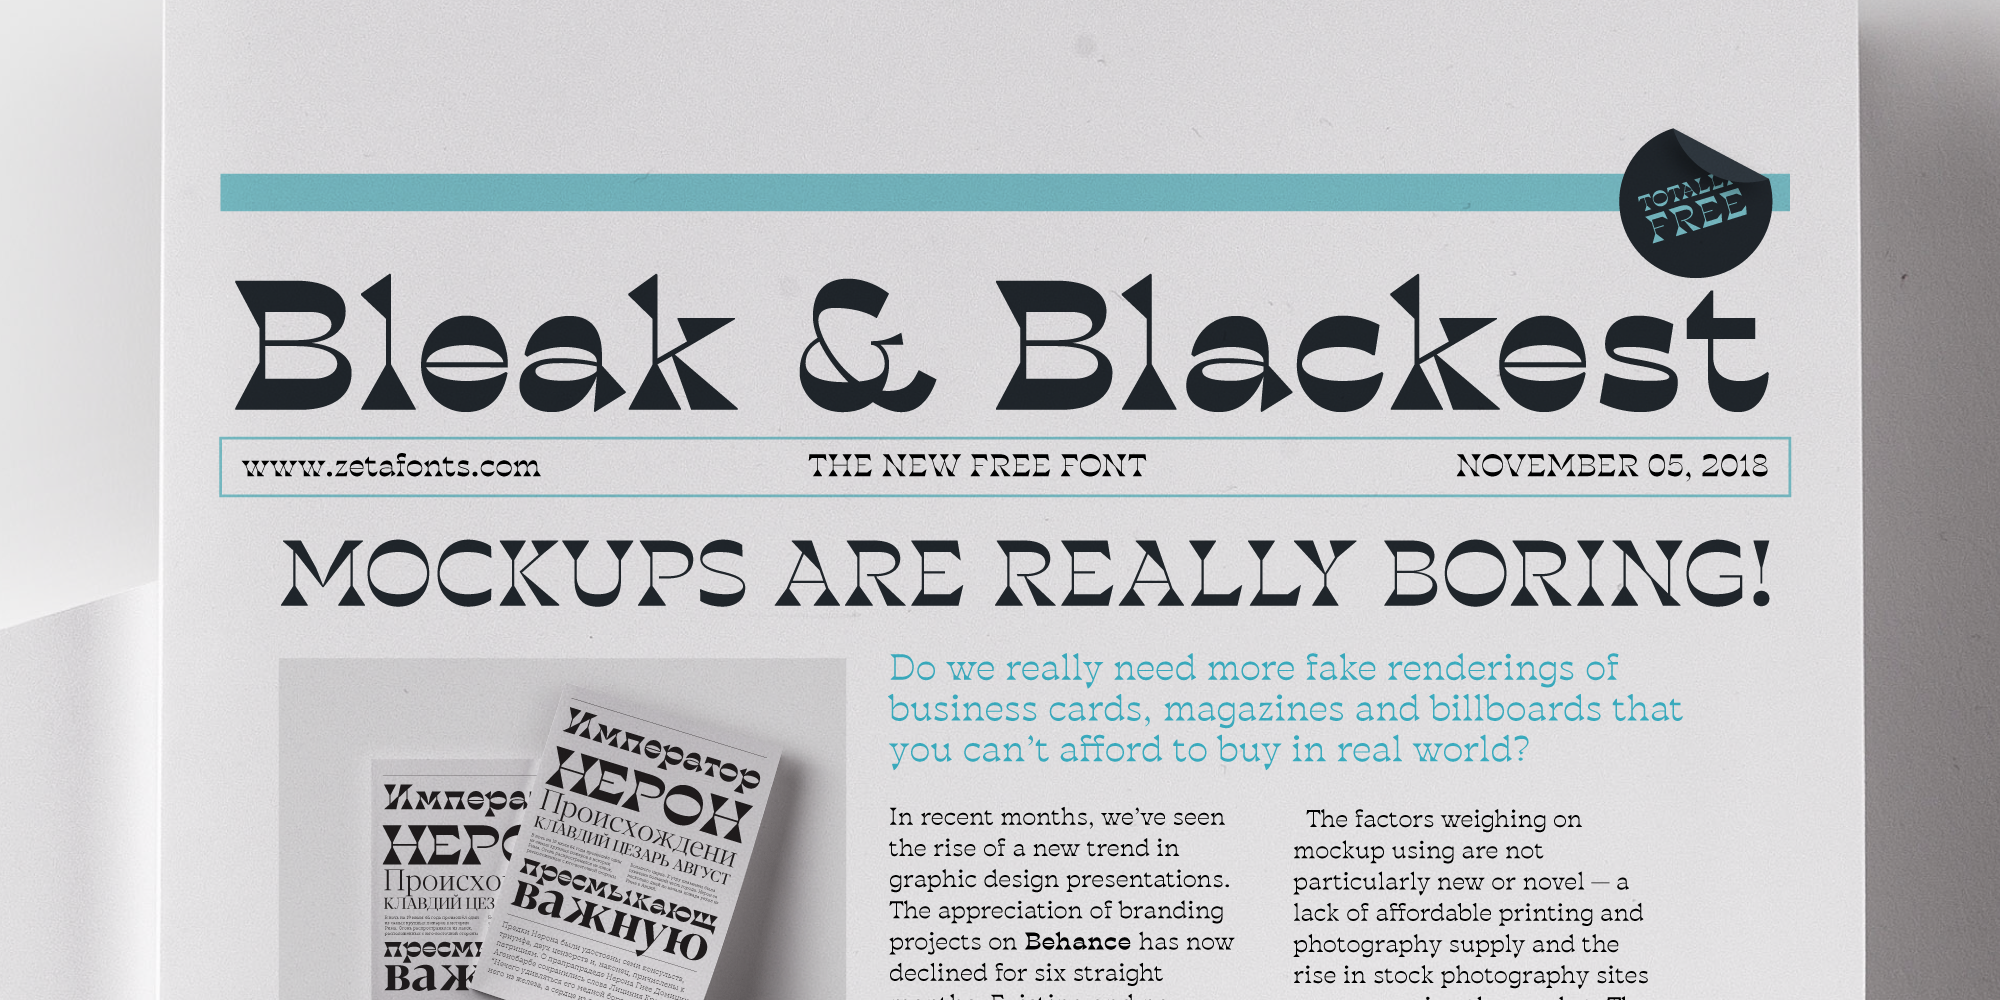 Blackest newspaper